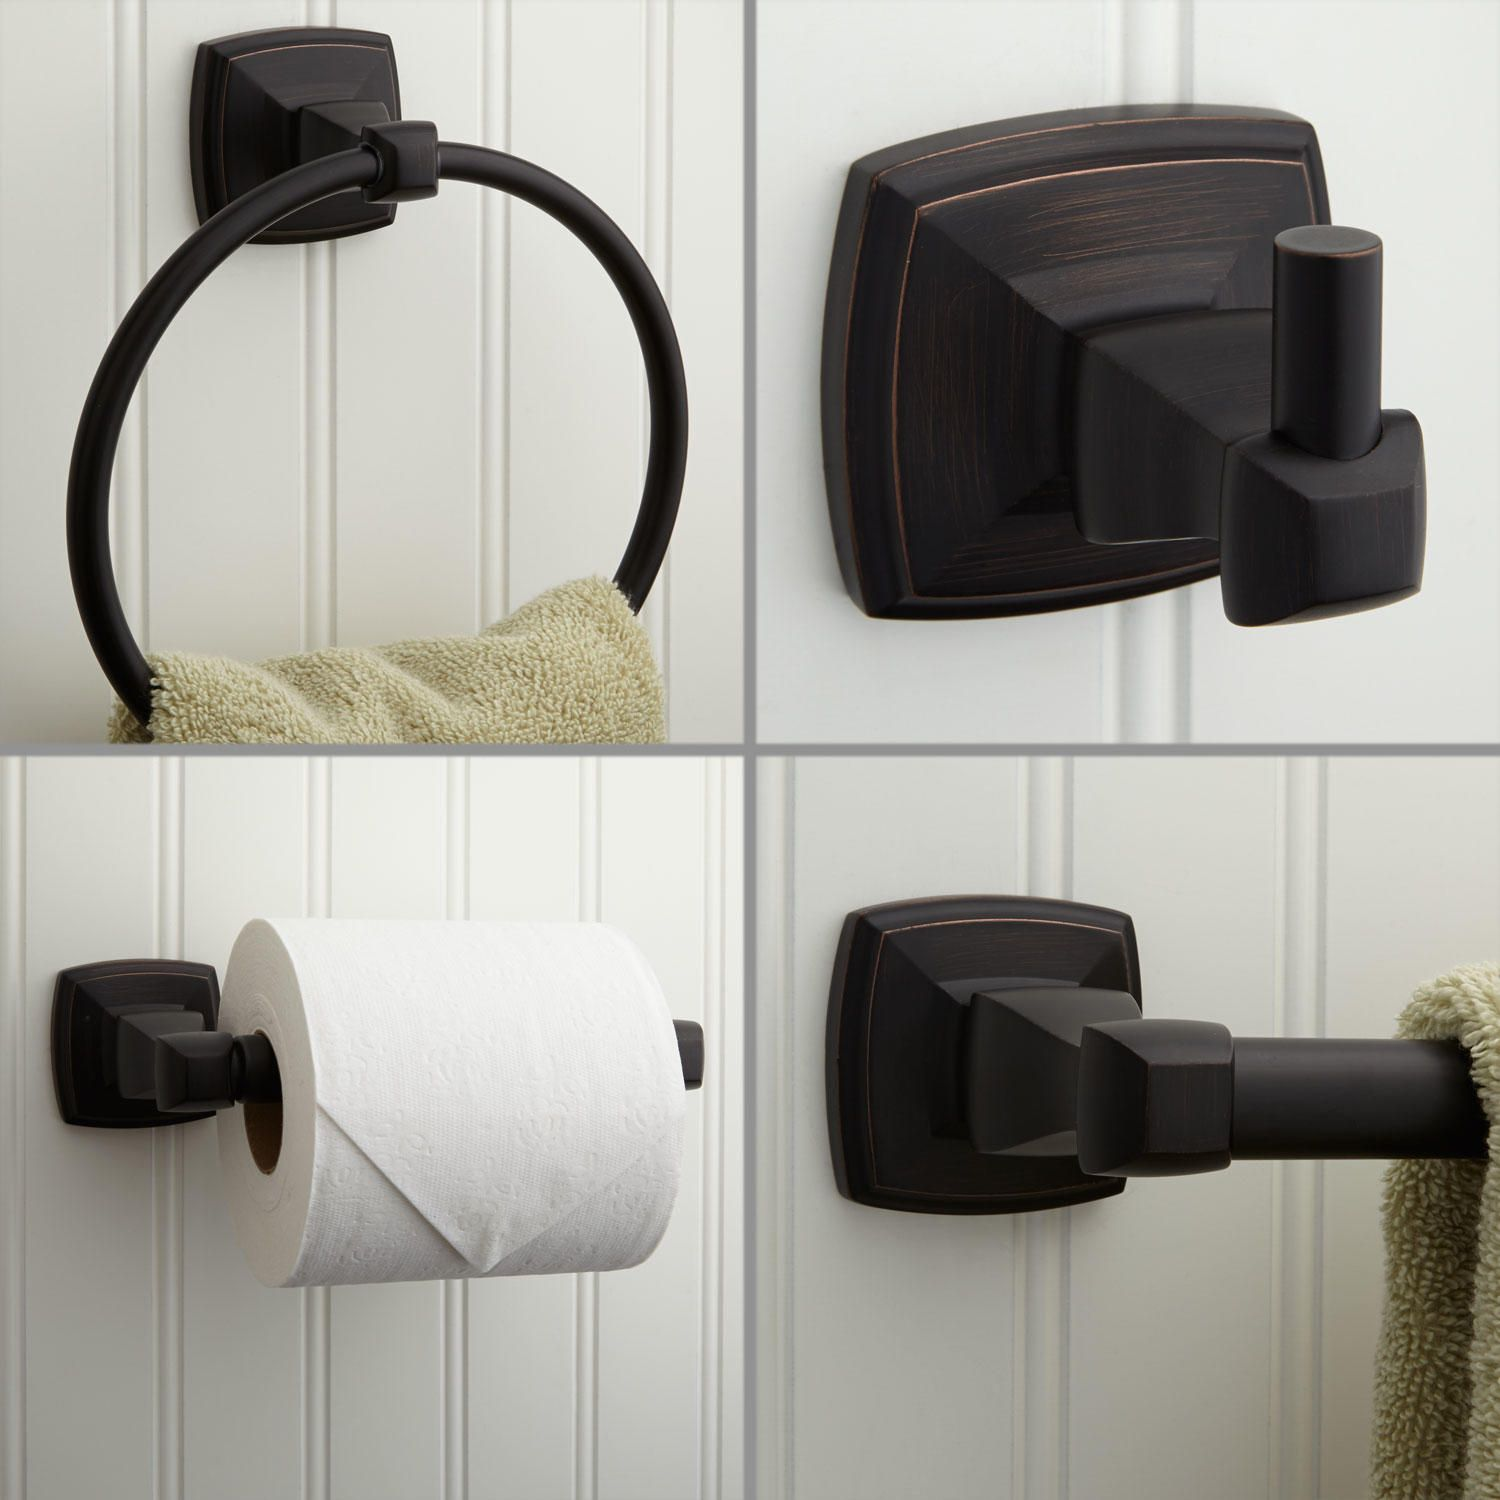 Rome 4 Piece Bathroom Accessory Set Oil Rubbed Bronze 63 24 Towel Bar